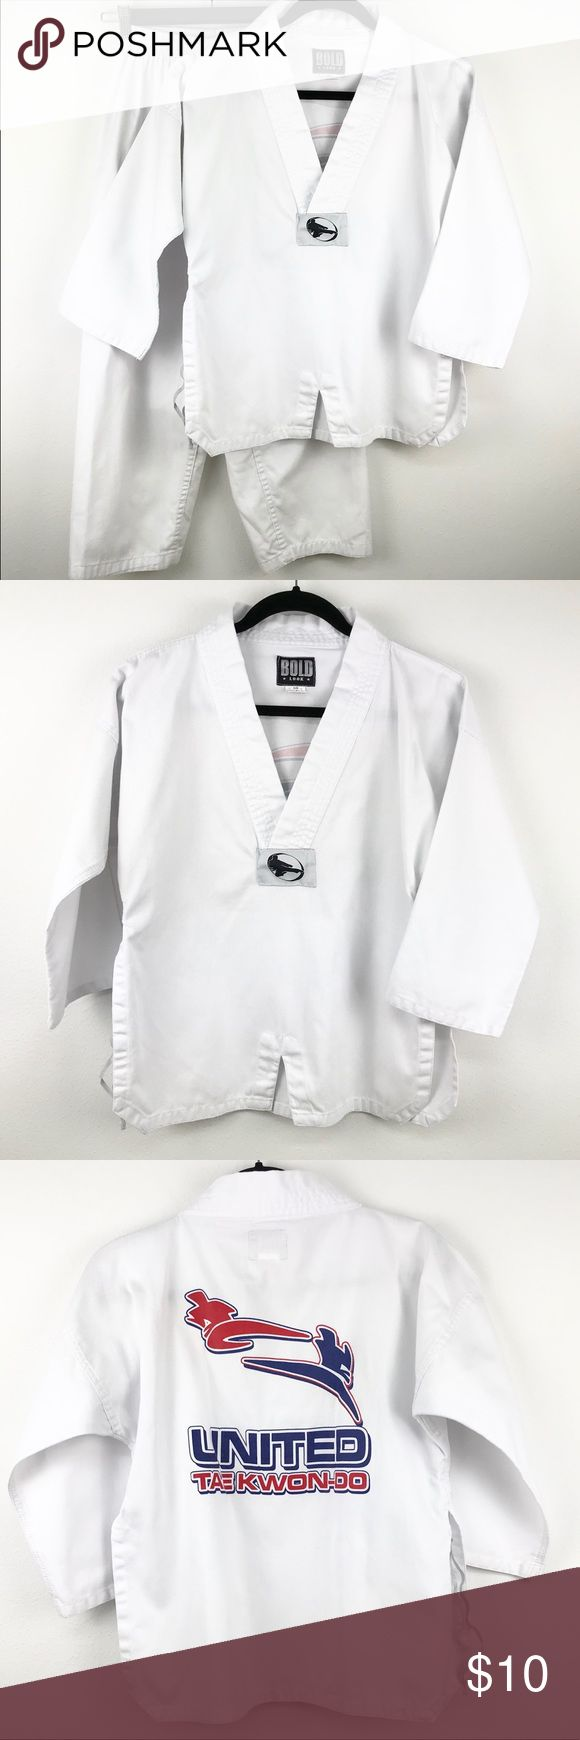 """Kids Karate Outfit White 3 Piece Set (165) Excellent used condition! No flaws. Kids unisex uniform for Karate & Tae Kwon Do. Great for dress up or costume too! Included is the top, pants & belt.  Size 1  Approximate Measurements Laying Flat: TOP: Shoulder- 22 1/2"""" Bust- 19 1/2"""" Length- 23 1/2""""  PANTS: Waist- 10 1/2"""" (17"""" stretched) Length- 32"""" ( From waist to ankle)  •Pet & Smoke Free Home •No Trades •BUNDLE DISCOUNT🛍  Feel free to make offer or ask questions! Thanks for visiting my closet…"""